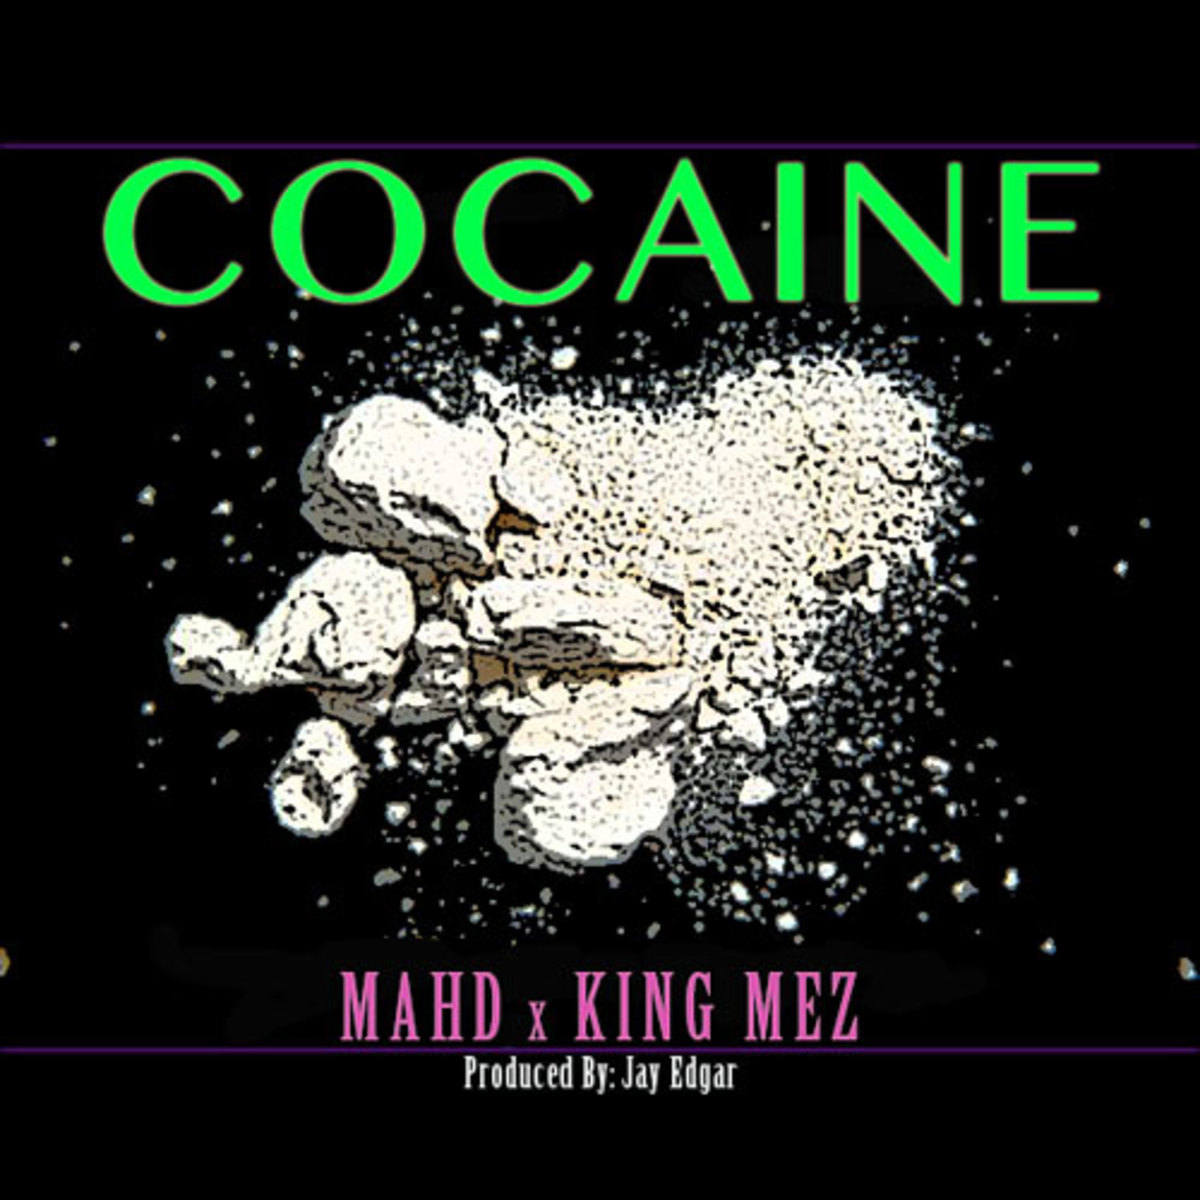 mahd-cocaine.jpg